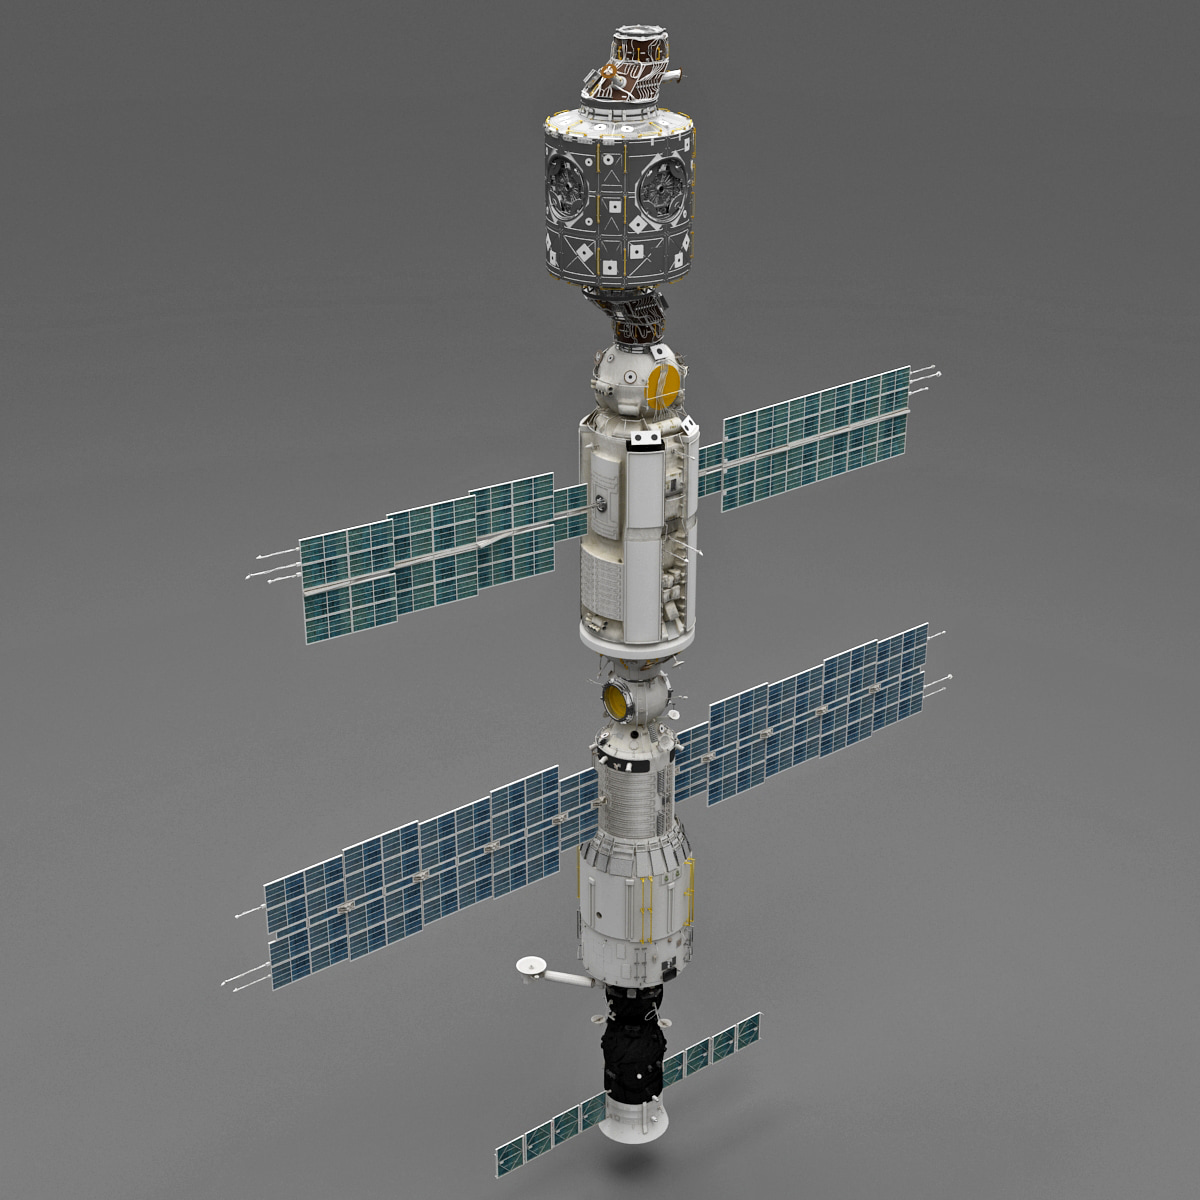 International_Space_Station_ISS_2000_0000.jpg